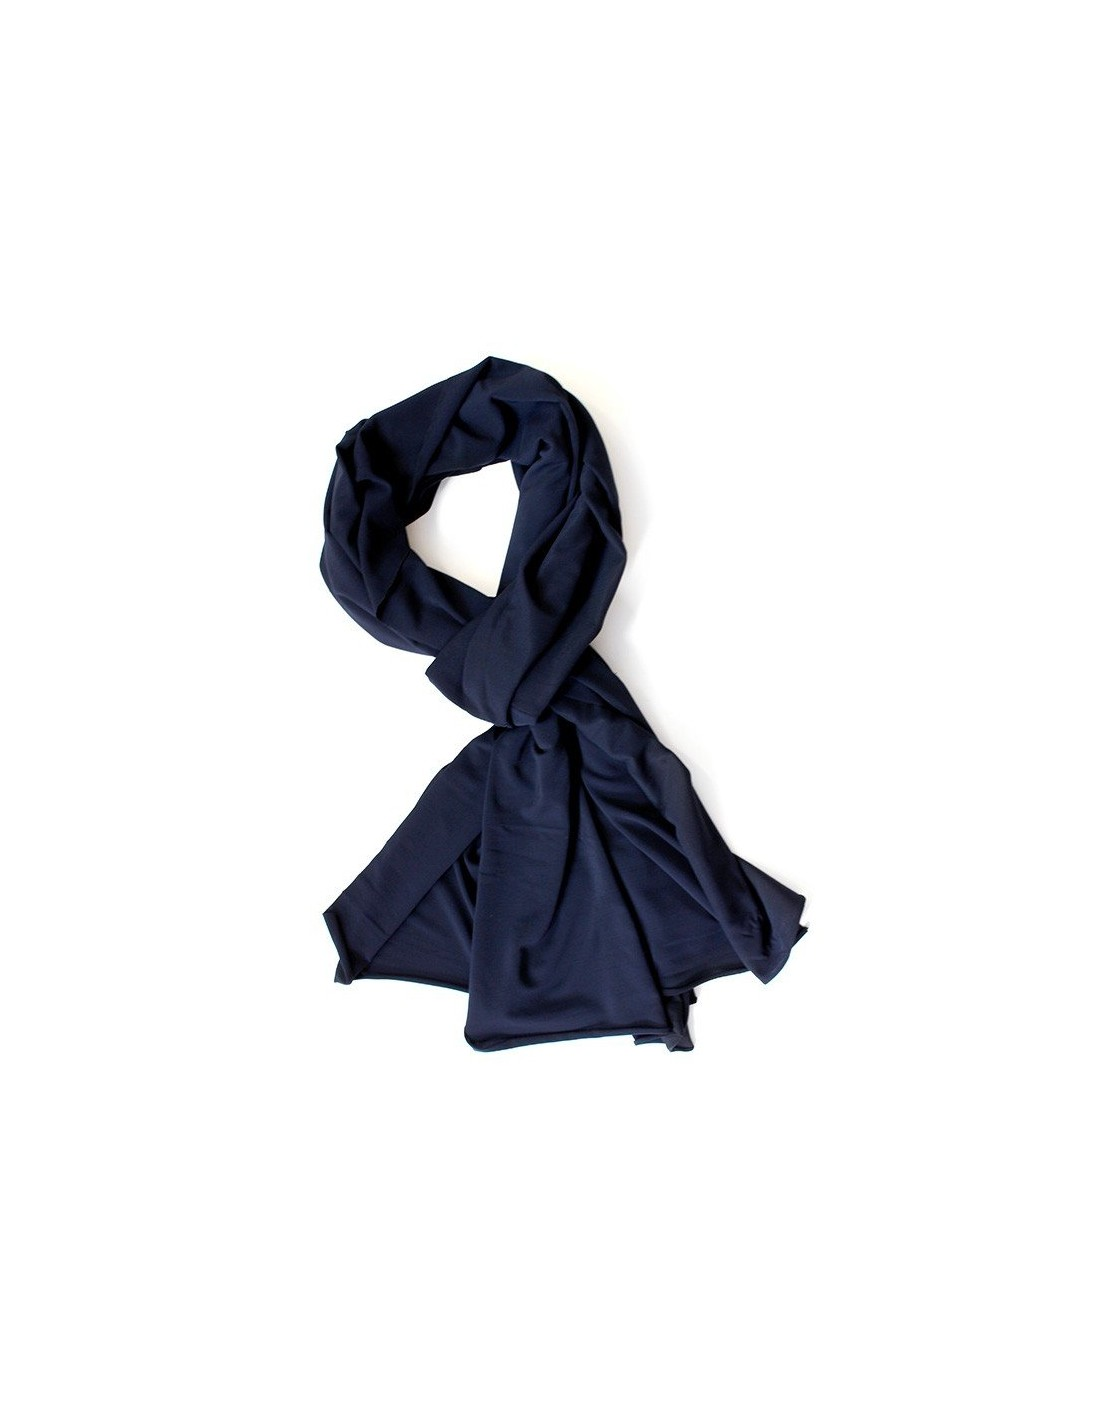 Shawl In High Quality Viscose Yogaessential Made In Italy